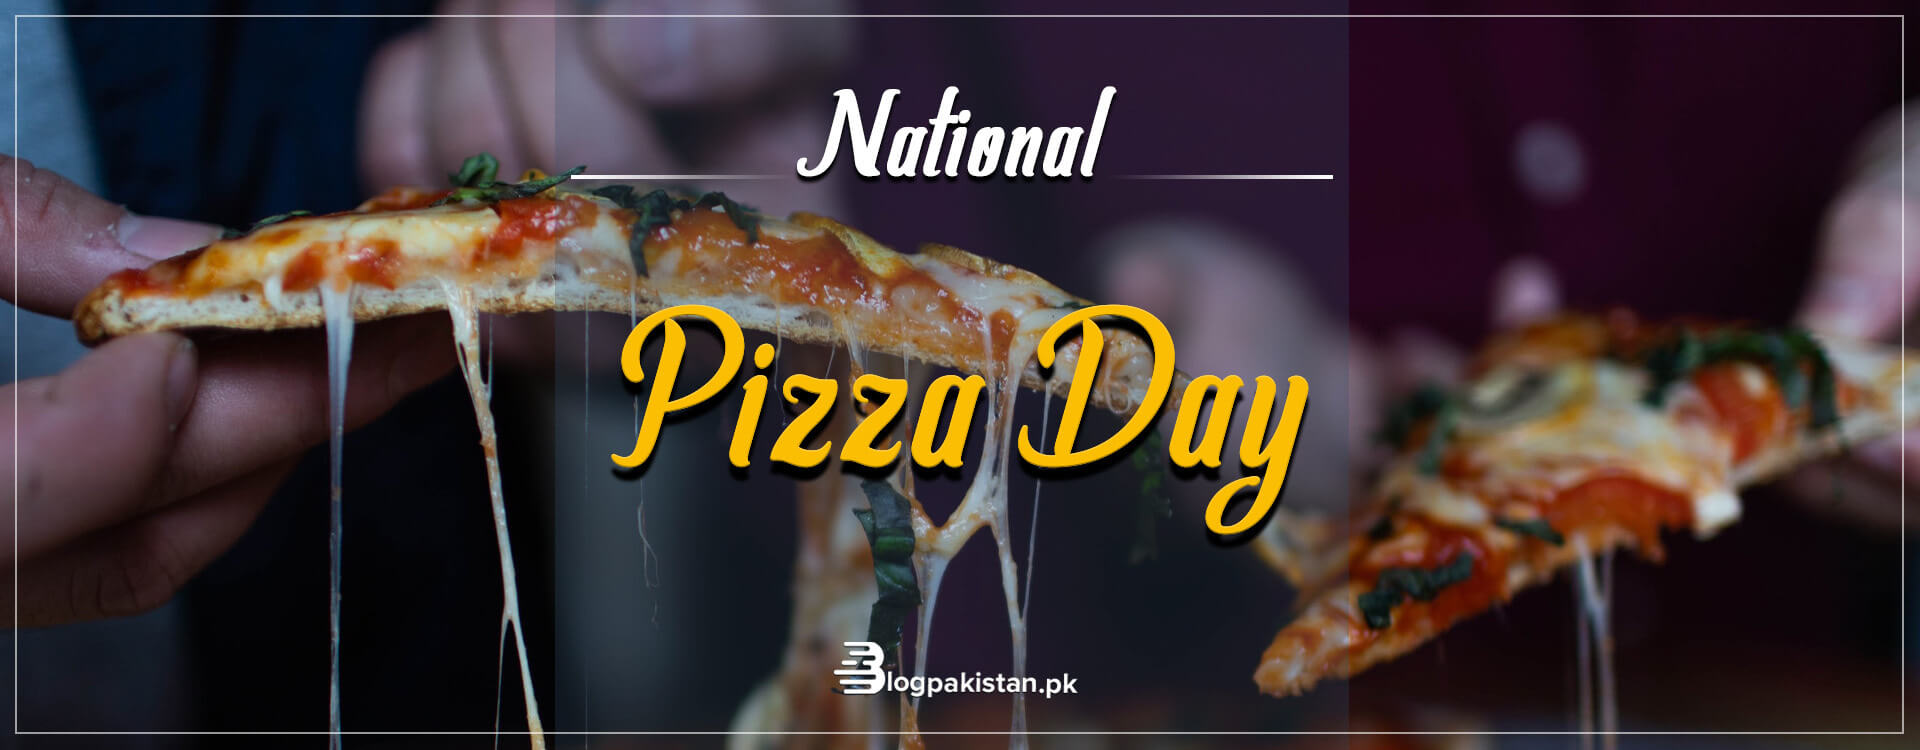 National Pizza Day: Fascinating Facts You Need to Know